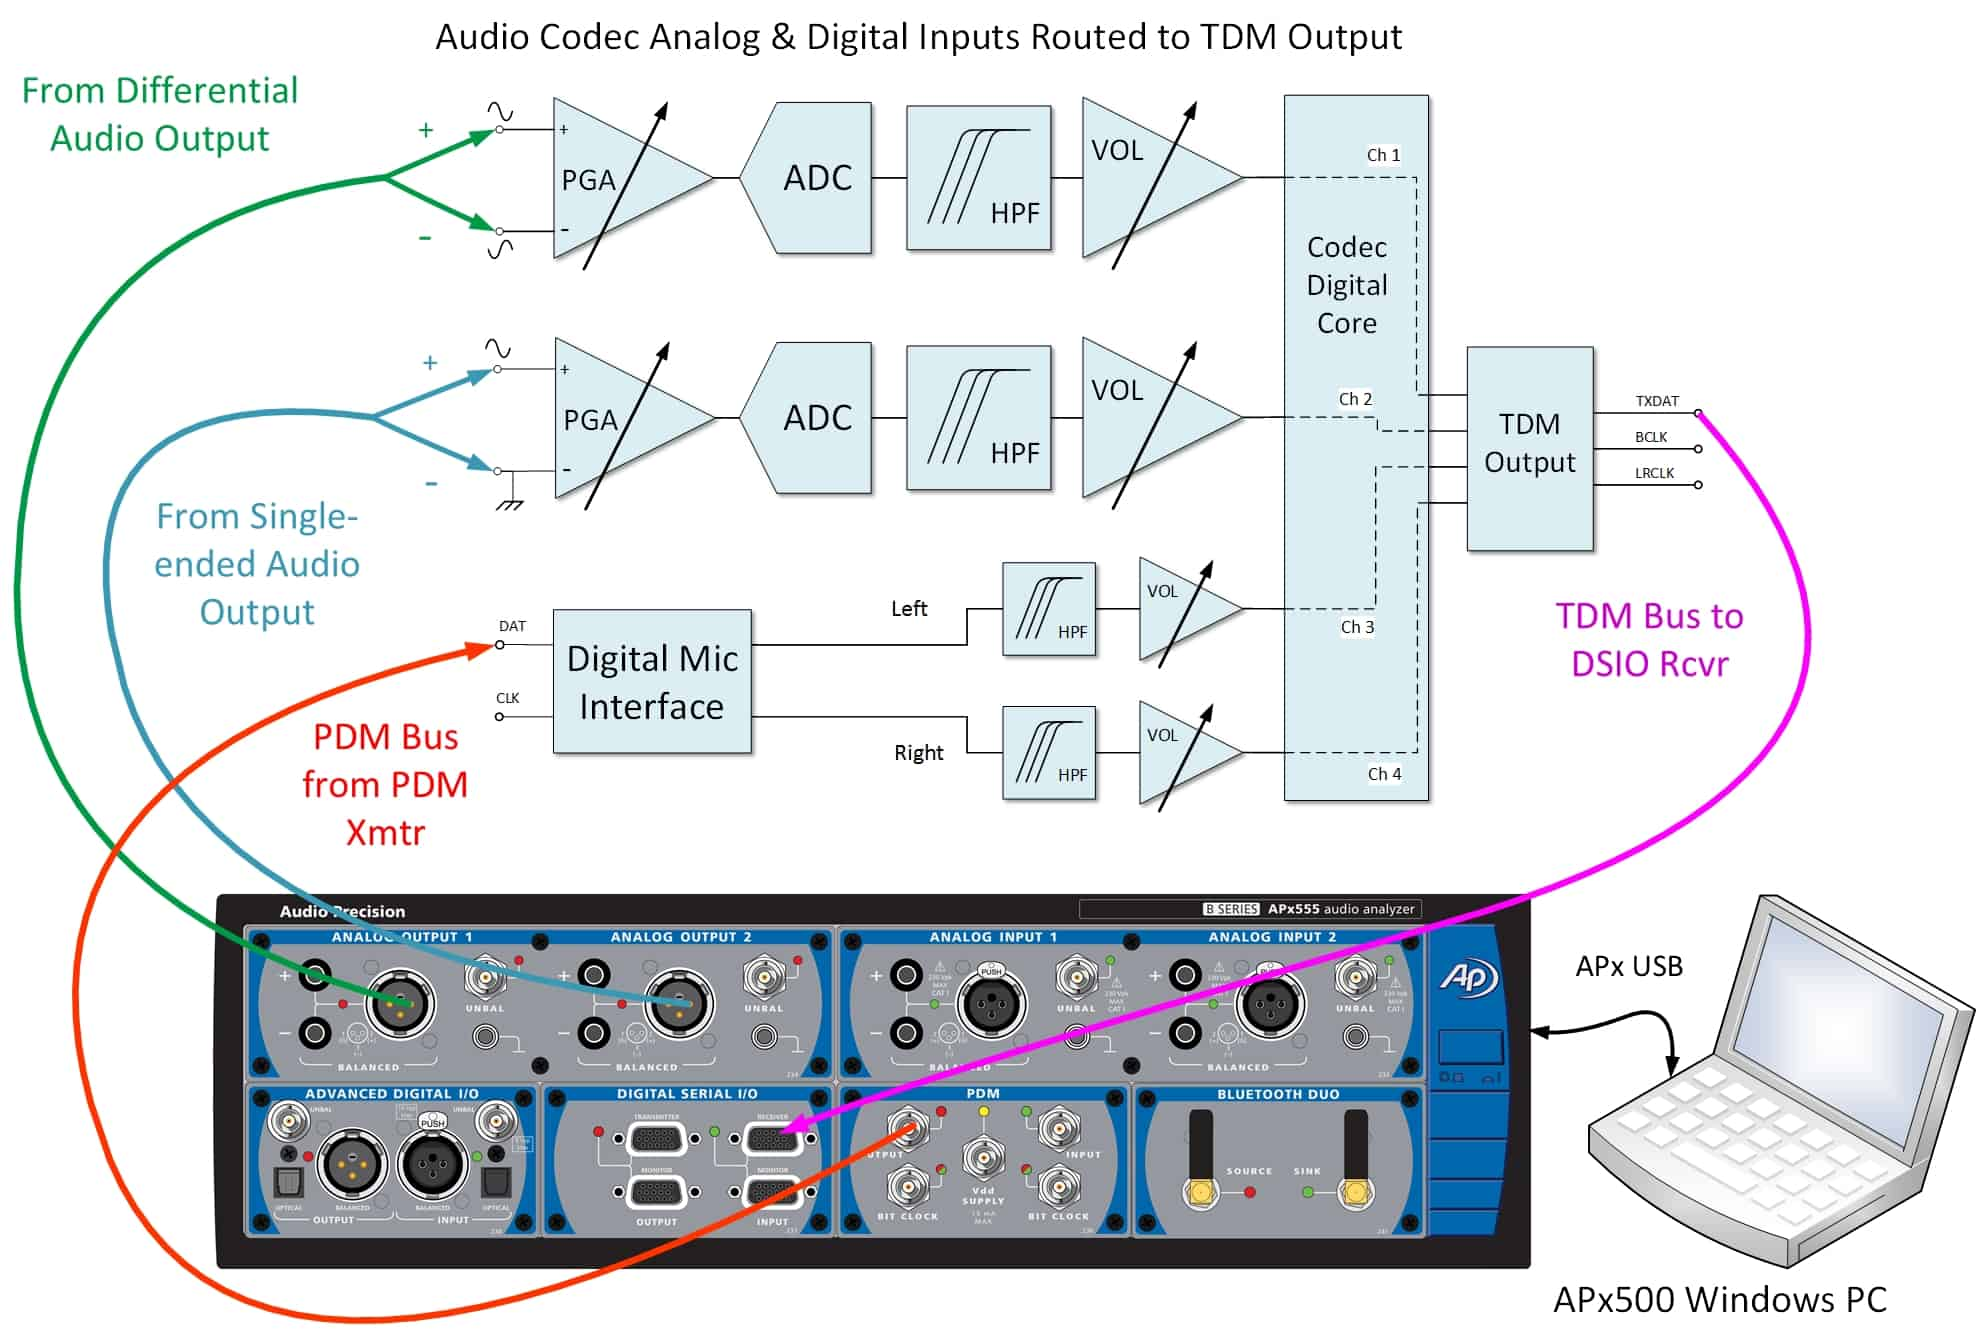 ADC Test Mode and Enhanced Performance Arrive with B Series